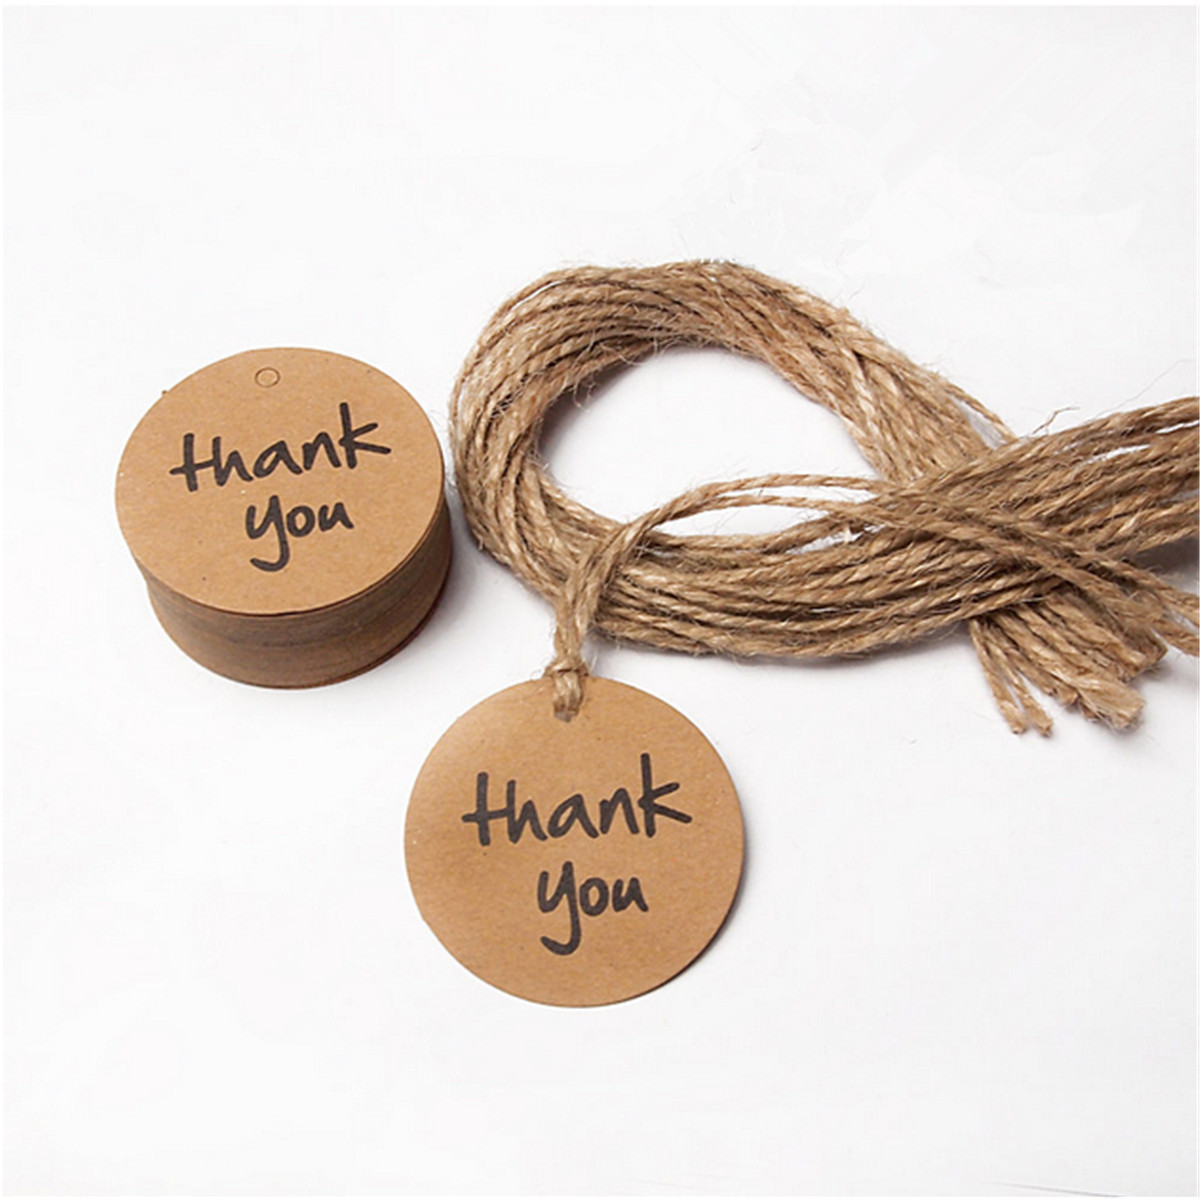 50Pcs Kraft Paper Hang Tags Brown Wedding Party Favor Gift Label + Strings